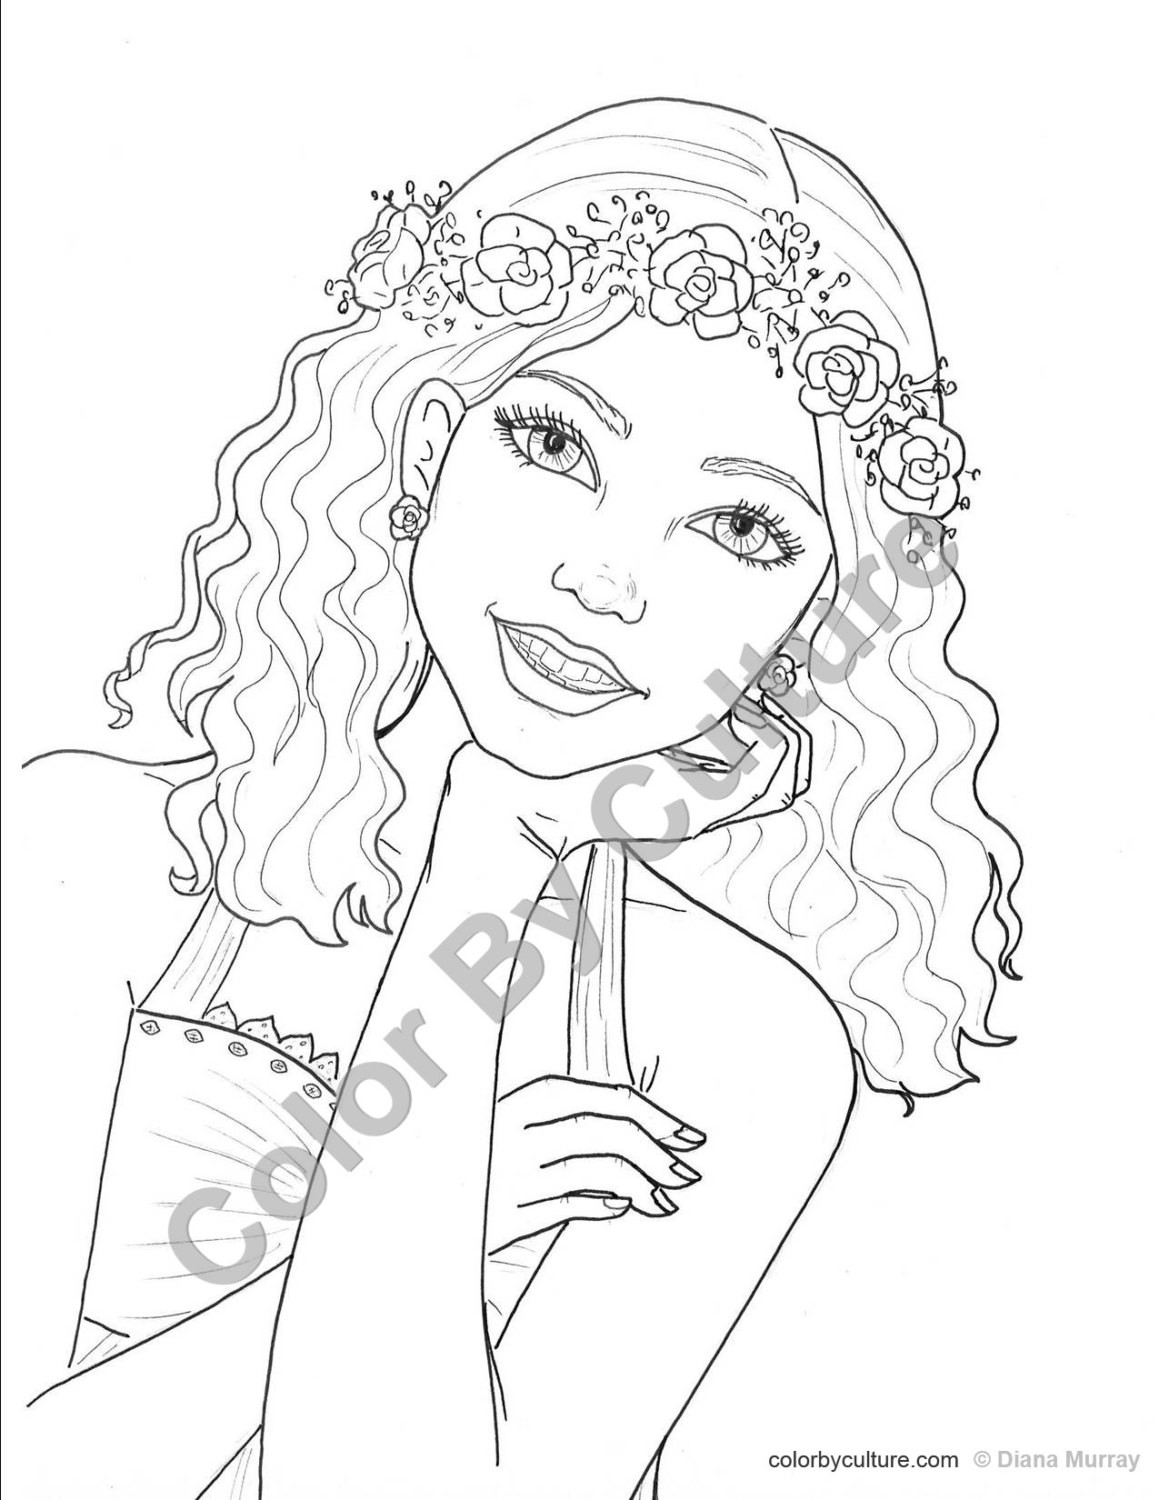 Detailed Coloring Pages Of Girls  Fashion Coloring Page Girl with Flower Wreath Coloring Page